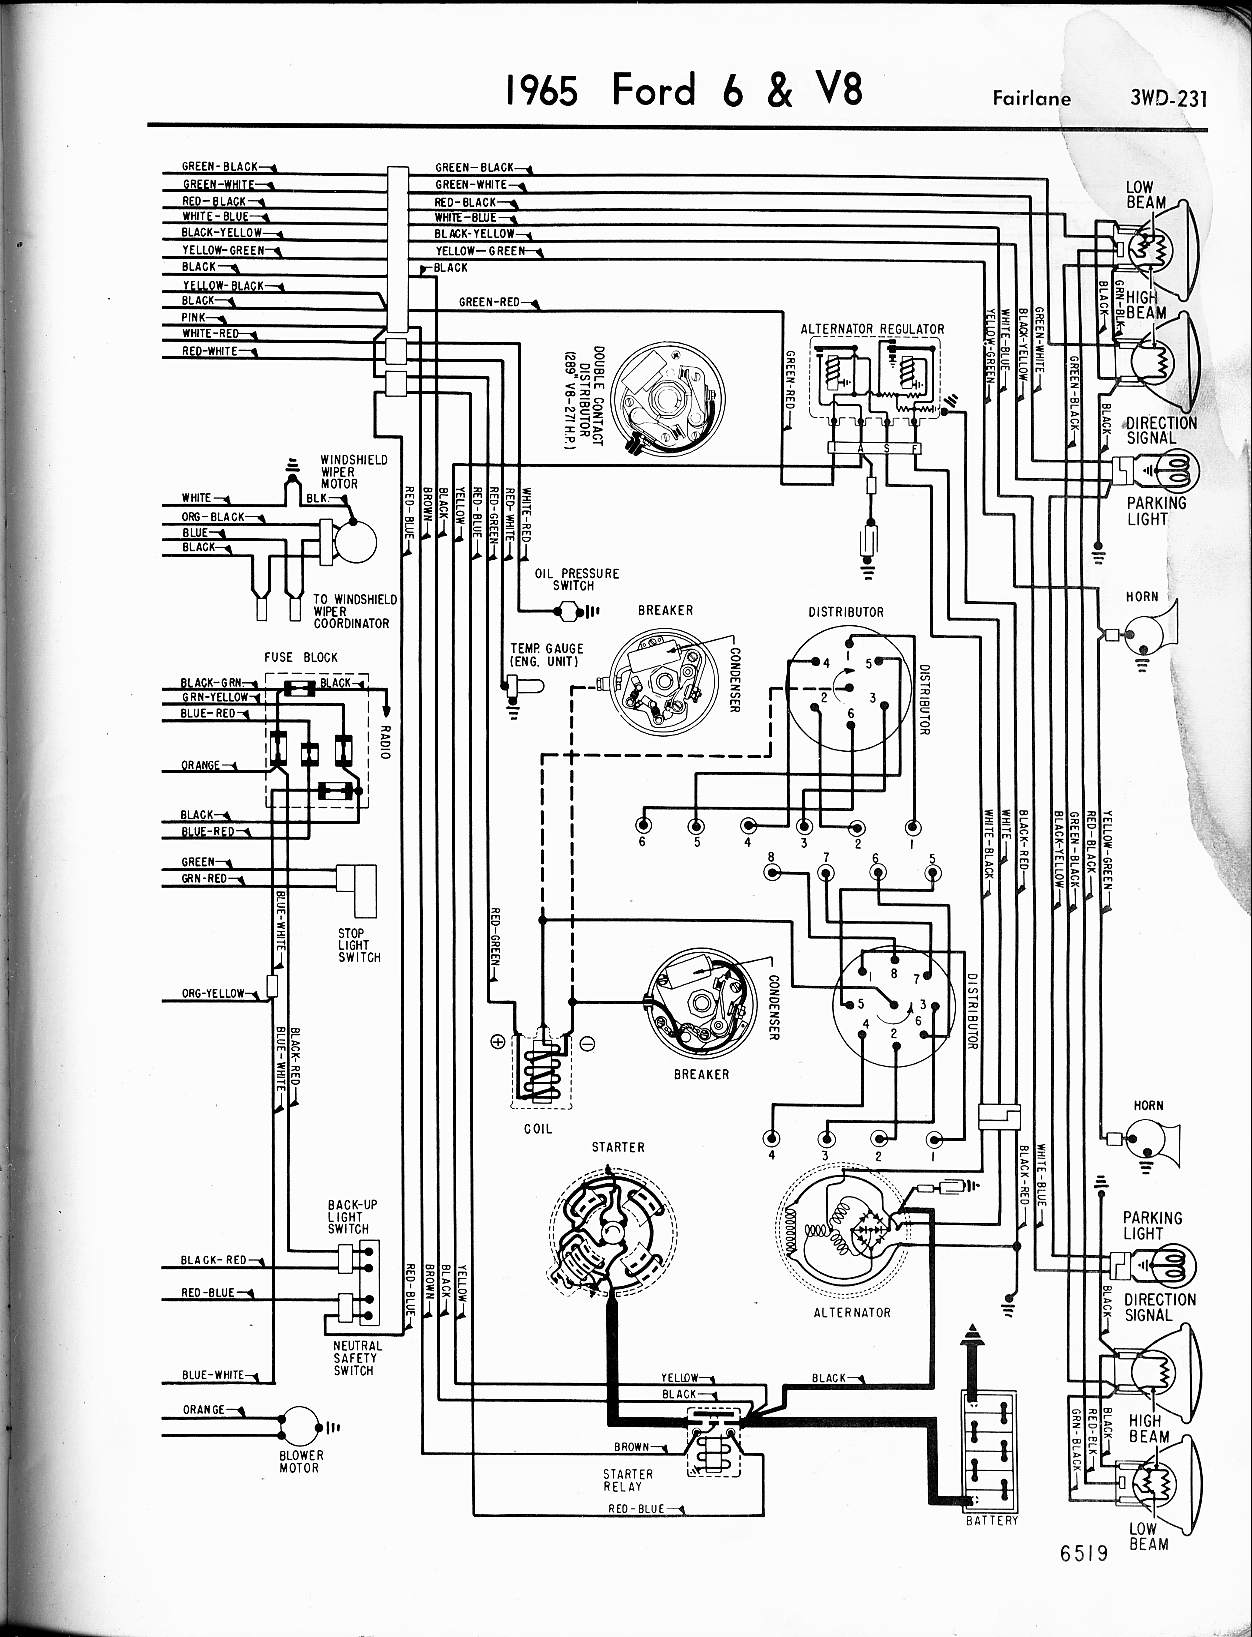 56bsp Hyundai Elantra Engine Light Flashes When Idling Car Shakes also 0ra63 2000 Ford Focus It So Installed Push Button Starter Crank as well Discussion D91 ds665233 as well Saab 9000 Engine Diagram in addition Fordindex. on car ignition coil diagram